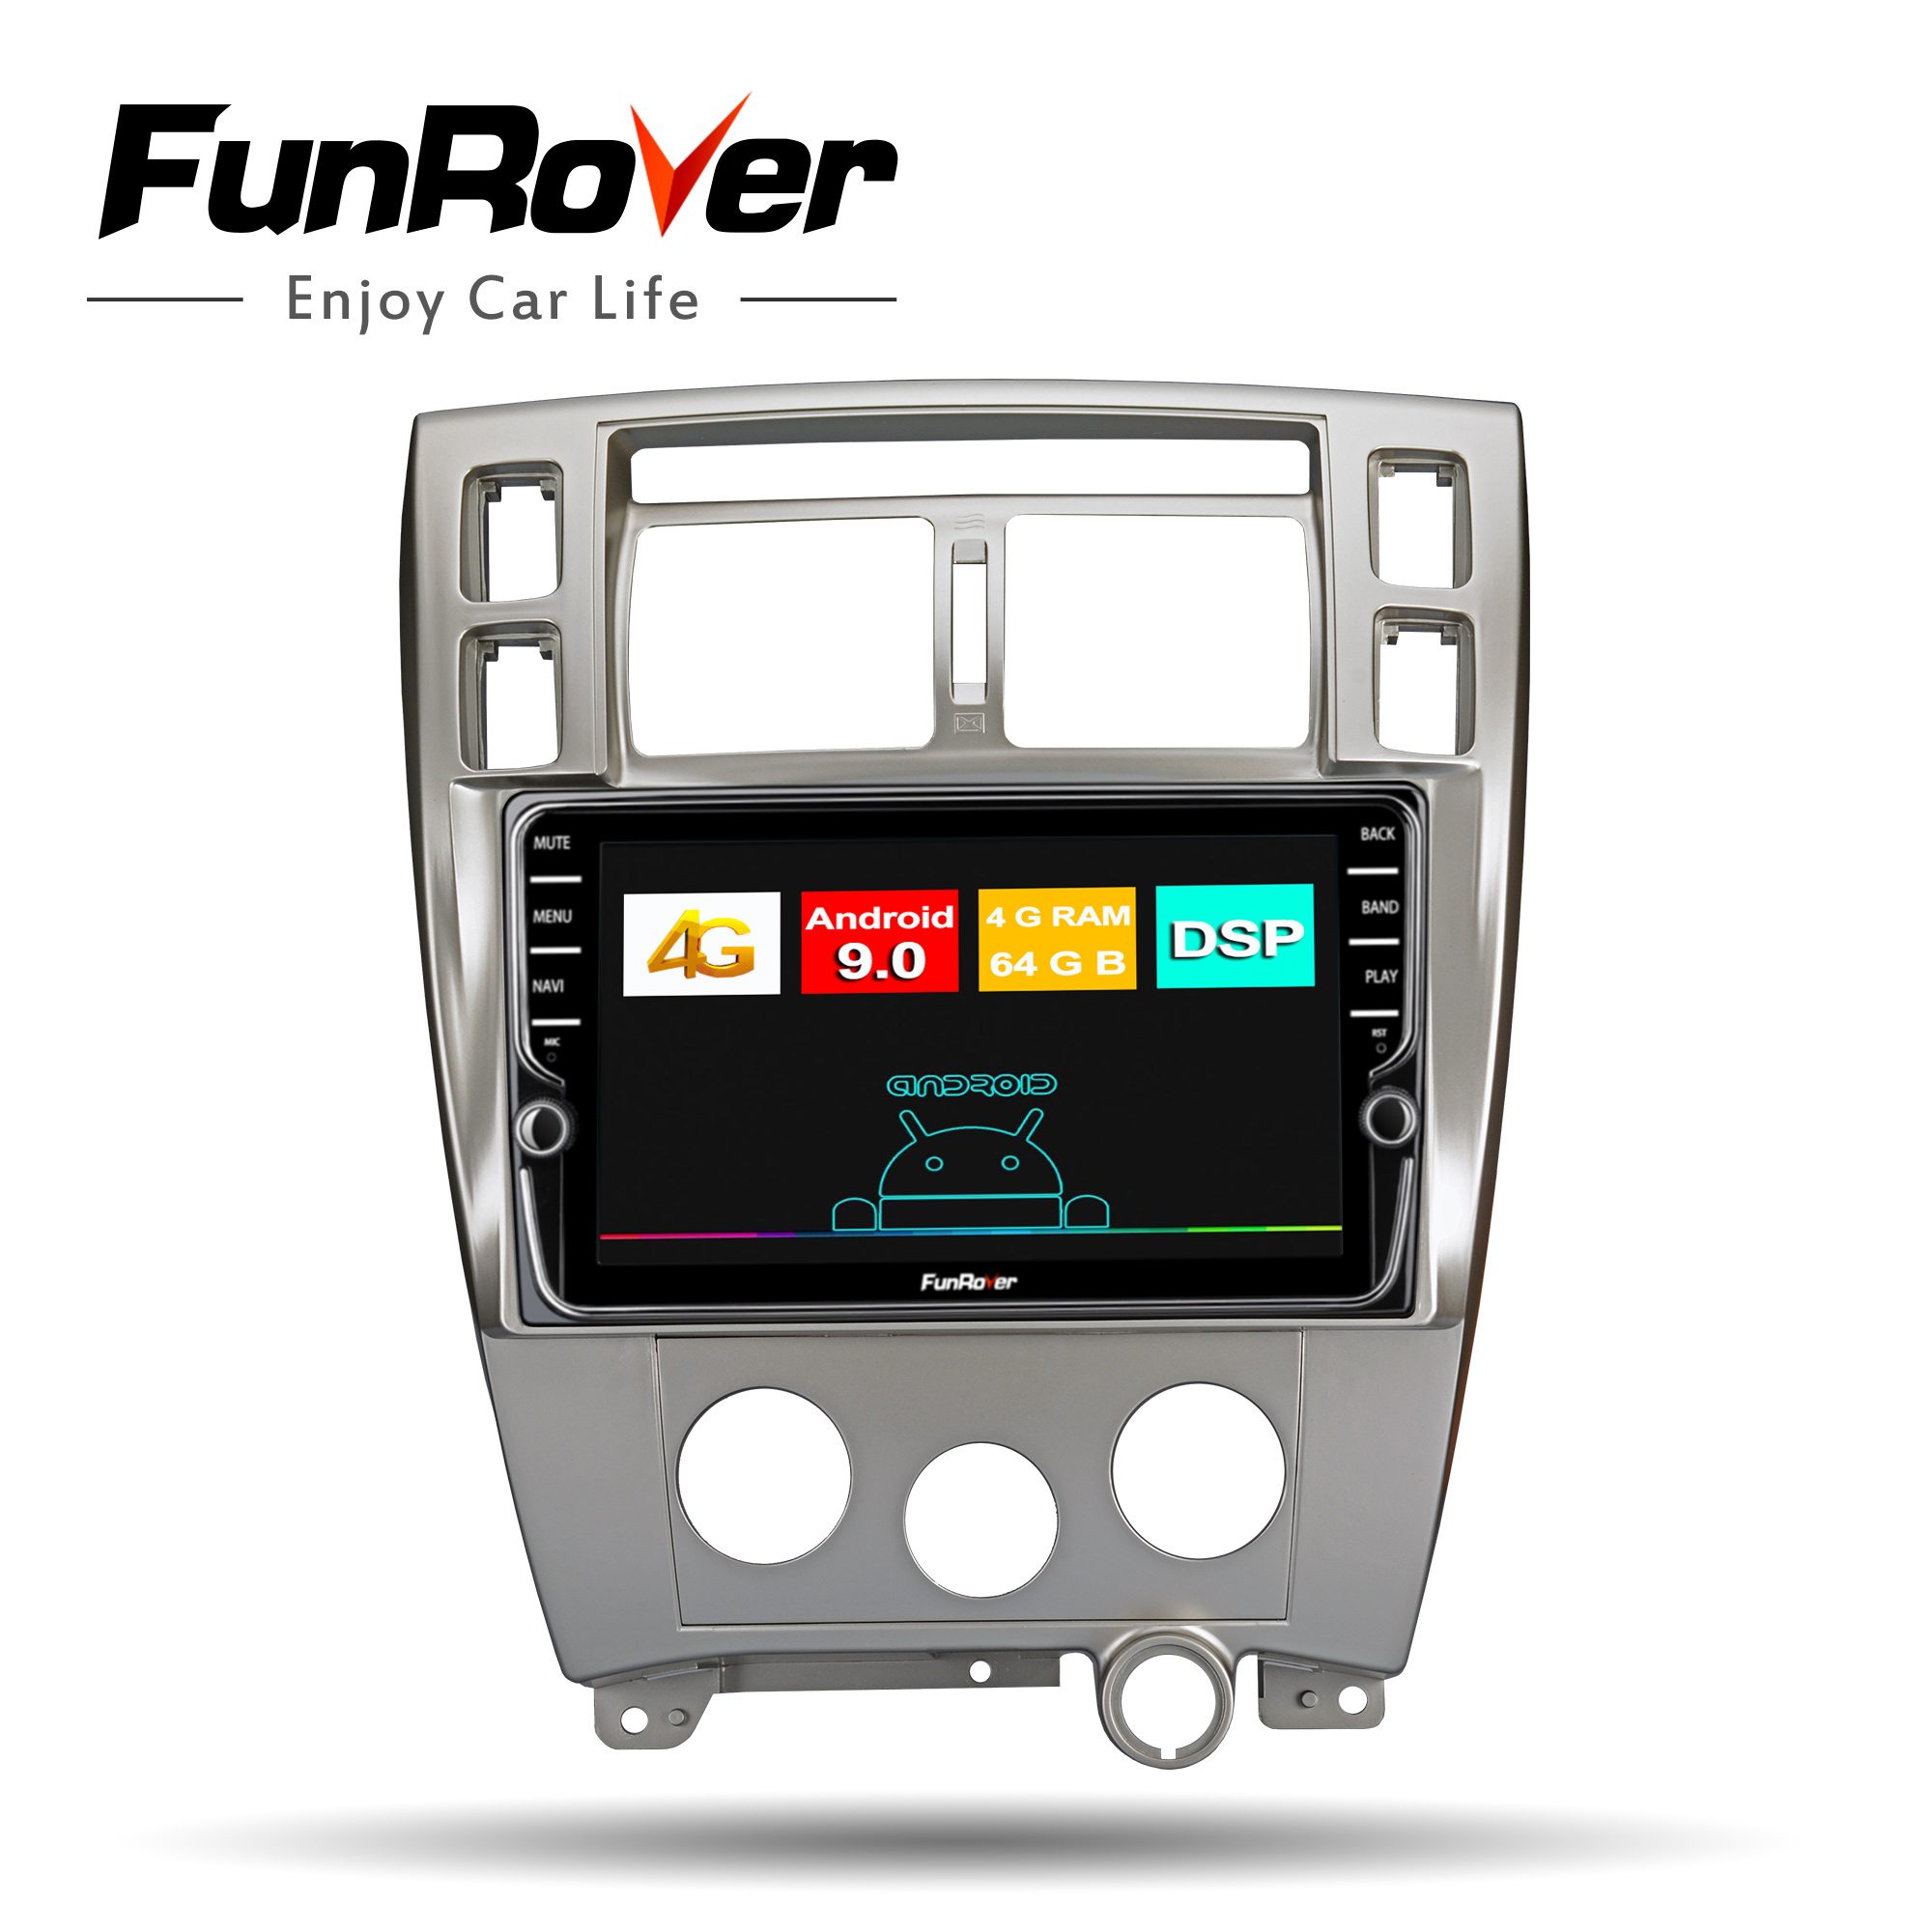 Funrover 8 cores <font><b>car</b></font> <font><b>radio</b></font> multimedia player dvd android 9.0 <font><b>For</b></font> <font><b>Hyundai</b></font> <font><b>Tucson</b></font> 2006-2014 <font><b>2</b></font> <font><b>din</b></font> autoradio gps navigation 4G+64G image